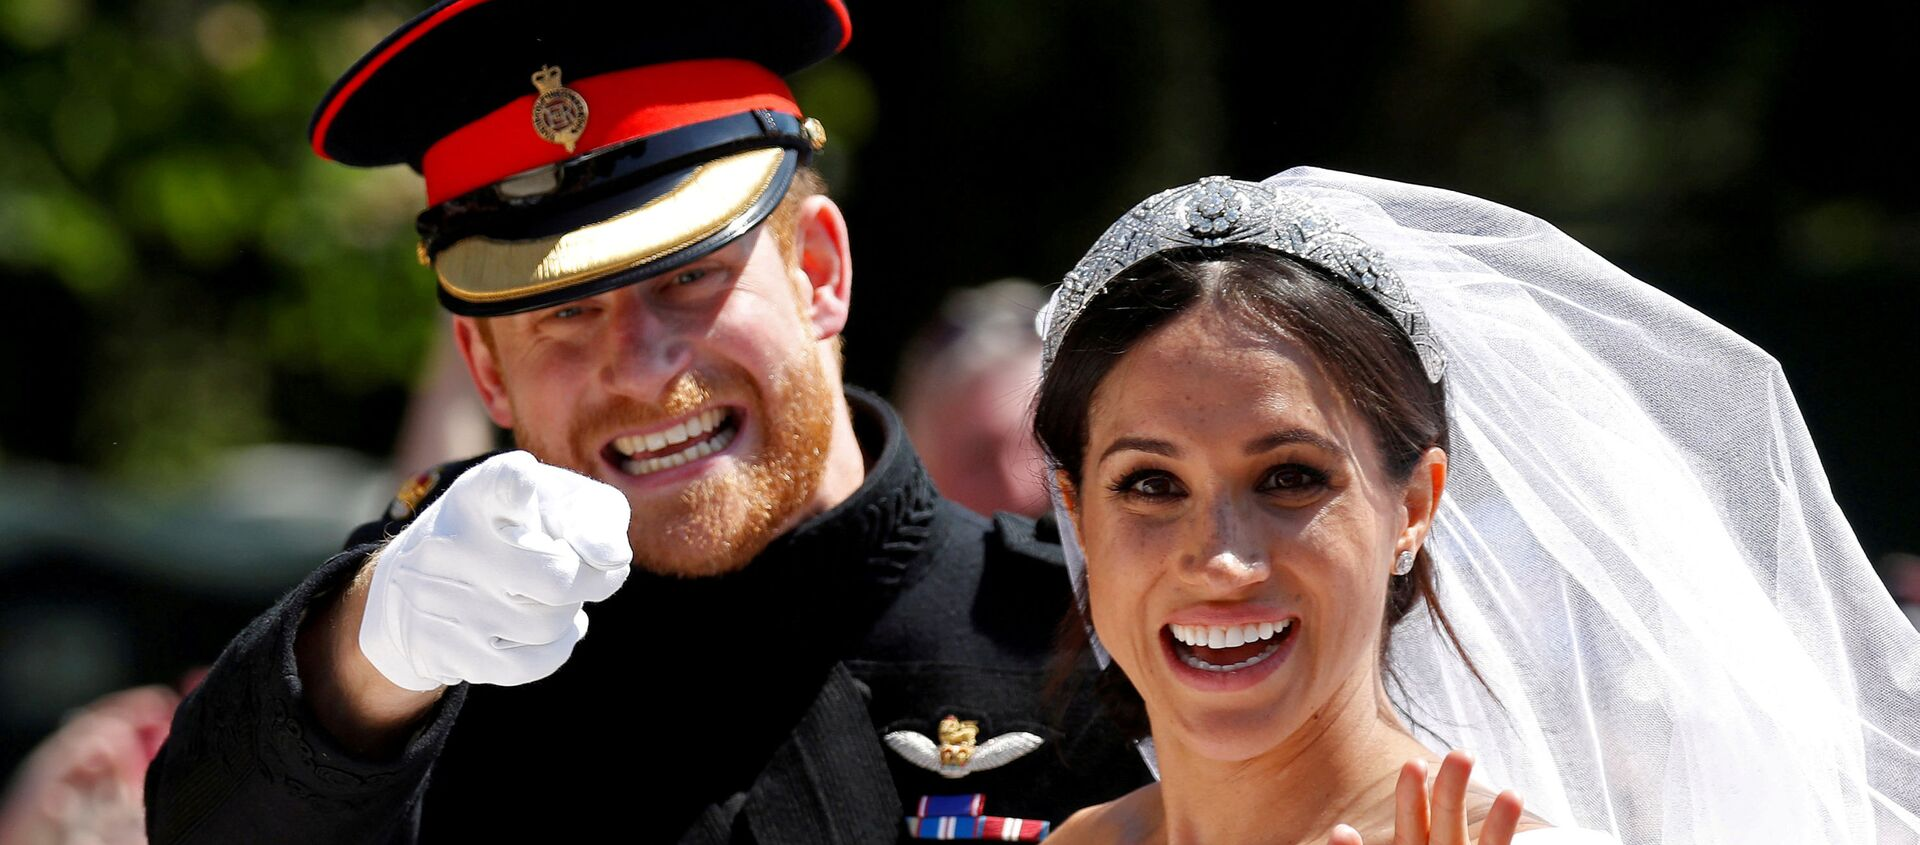 Britain's Prince Harry gestures next to his wife Meghan as they ride a horse-drawn carriage after their wedding ceremony at St George's Chapel in Windsor Castle in Windsor, Britain, May 19, 2018. - Sputnik International, 1920, 17.04.2021